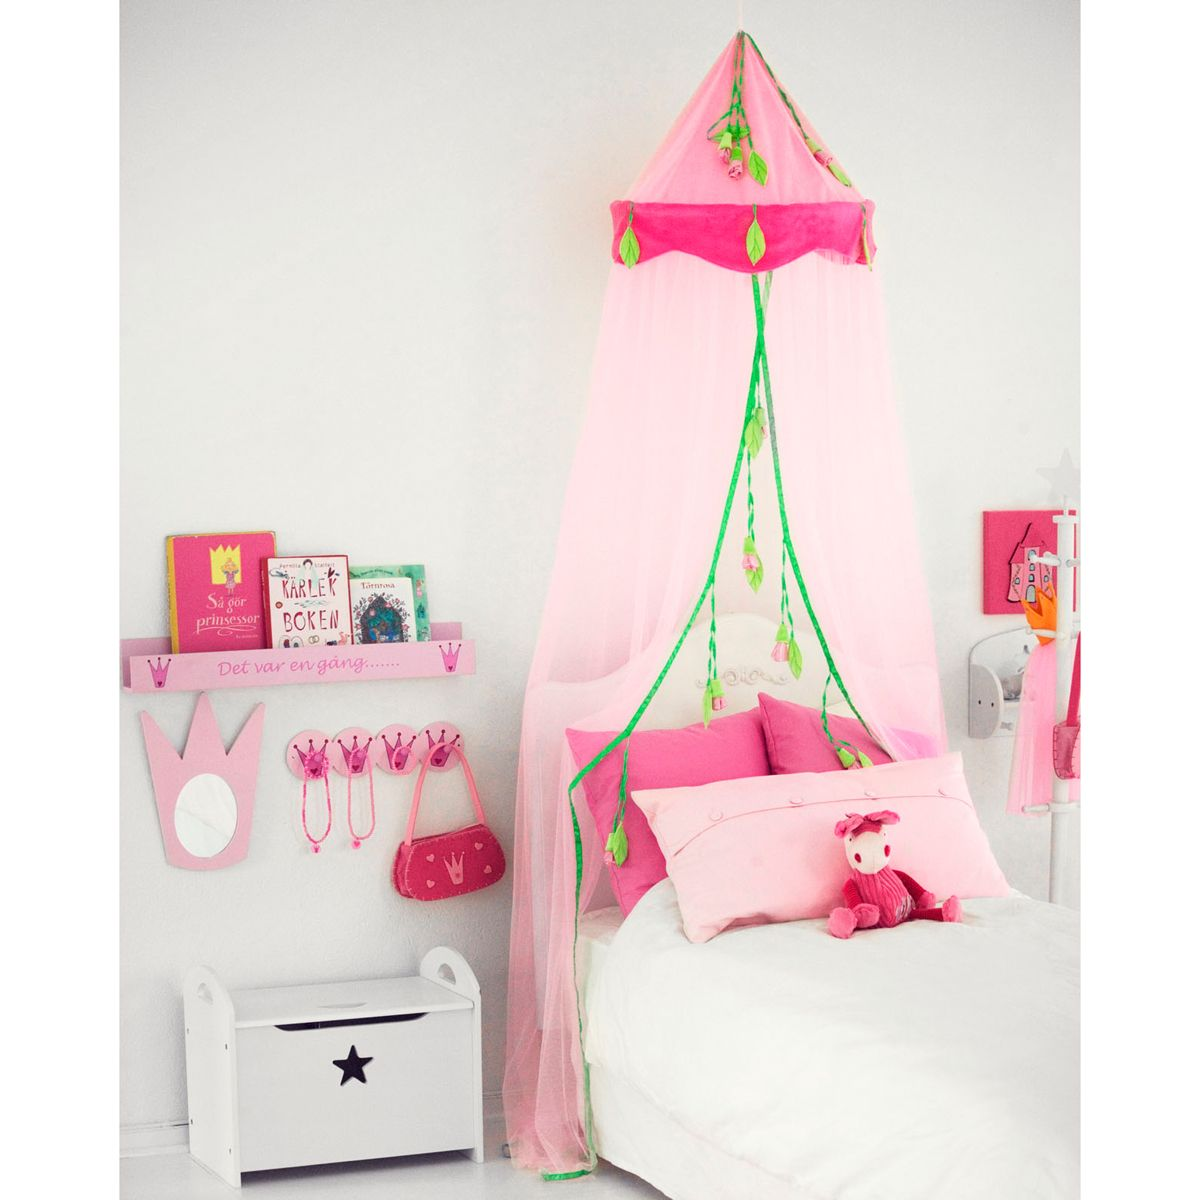 betthimmel prinzessin in rosa von kids concept kaufen. Black Bedroom Furniture Sets. Home Design Ideas